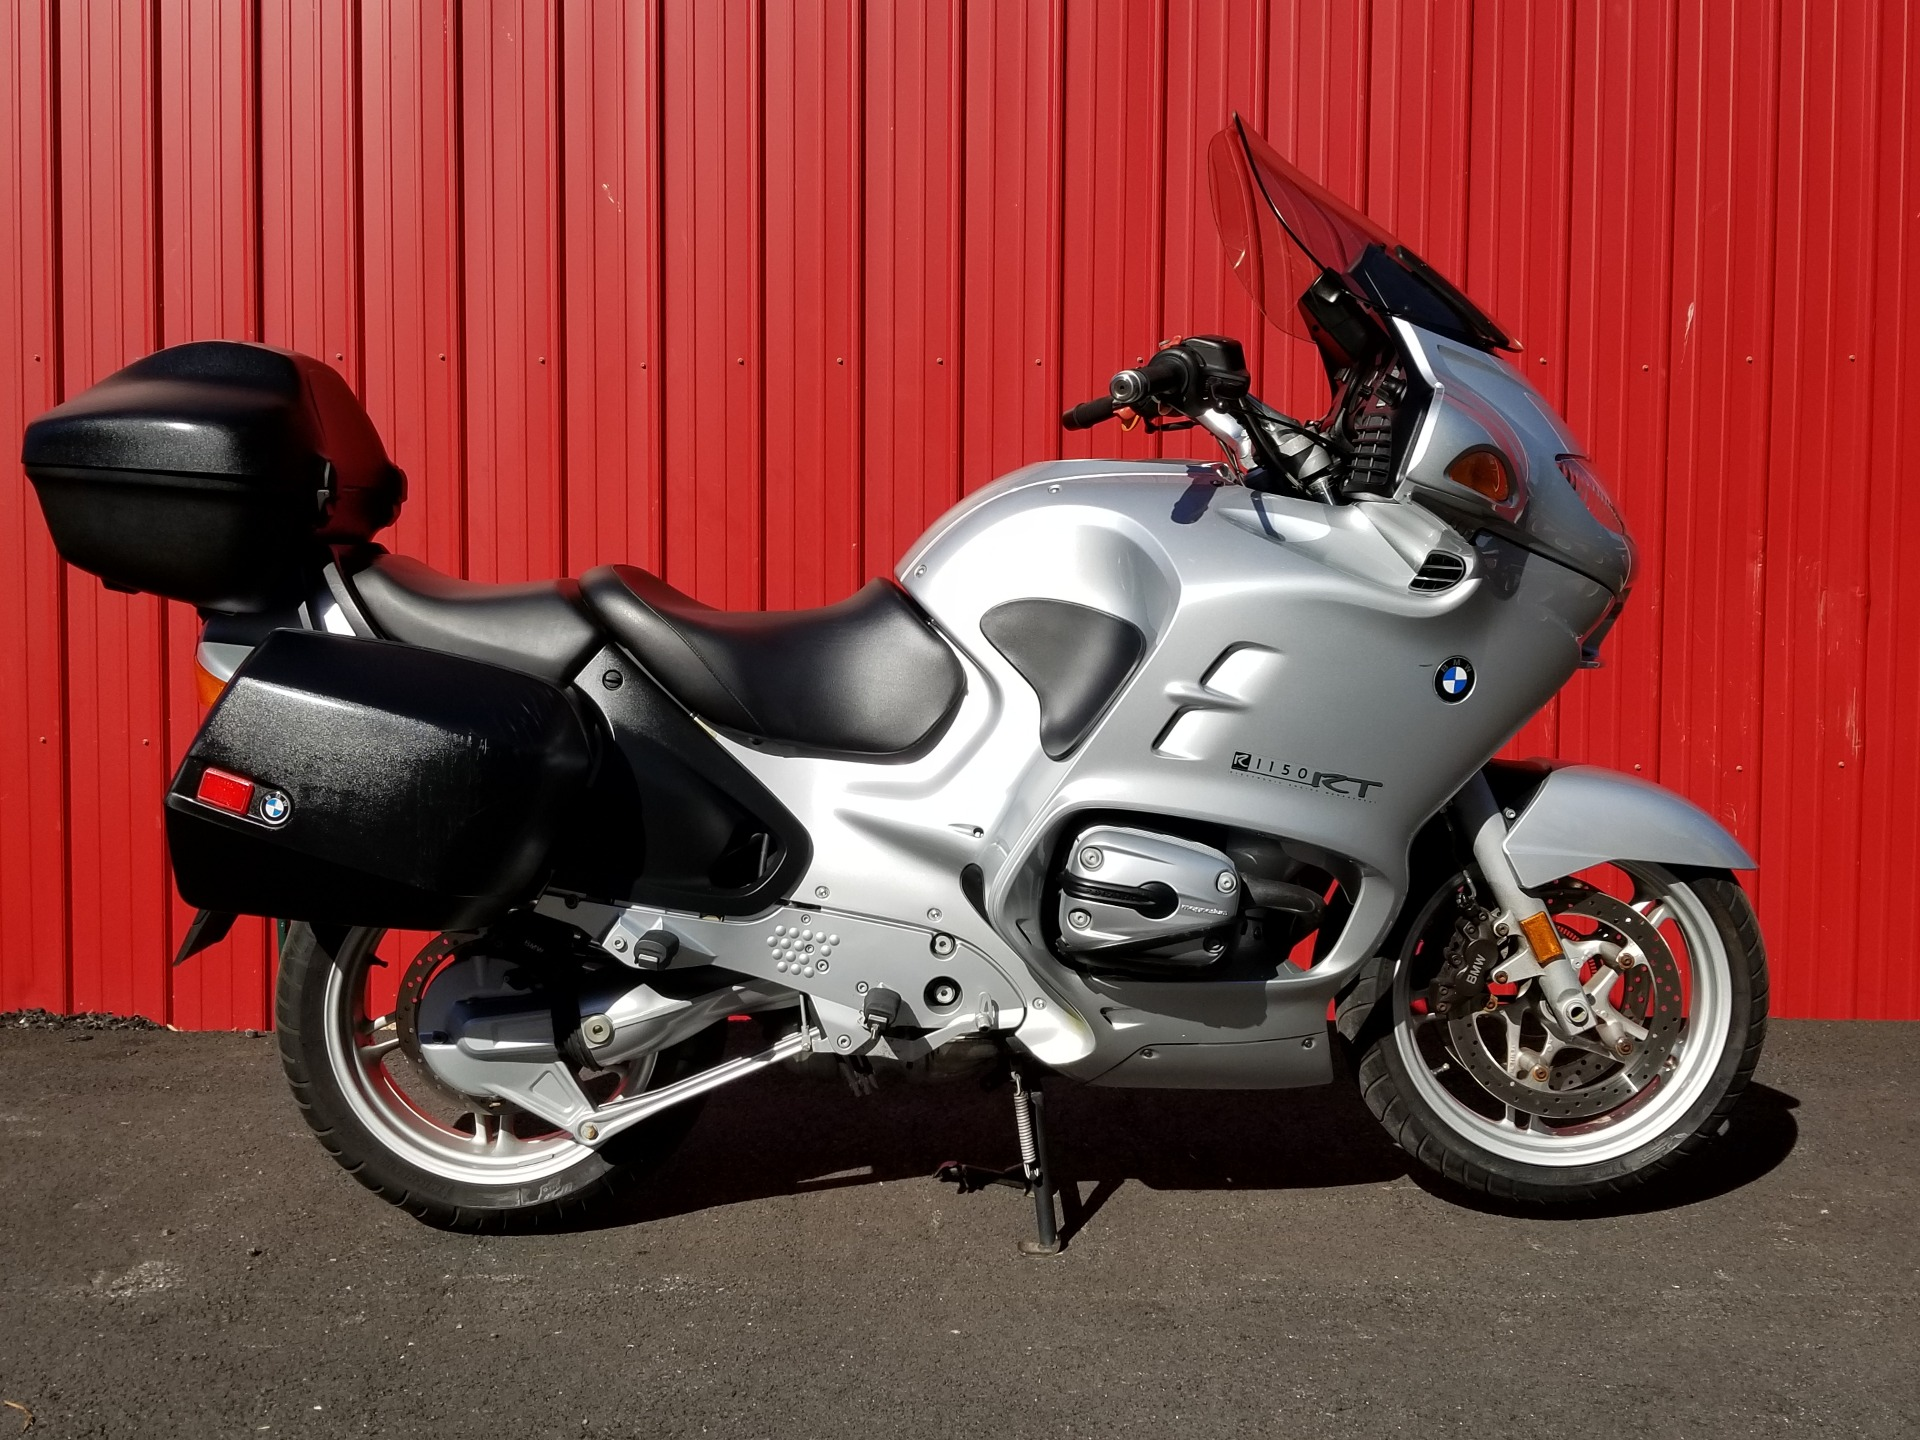 hight resolution of 2004 bmw r 1150 rt abs in port clinton pennsylvania